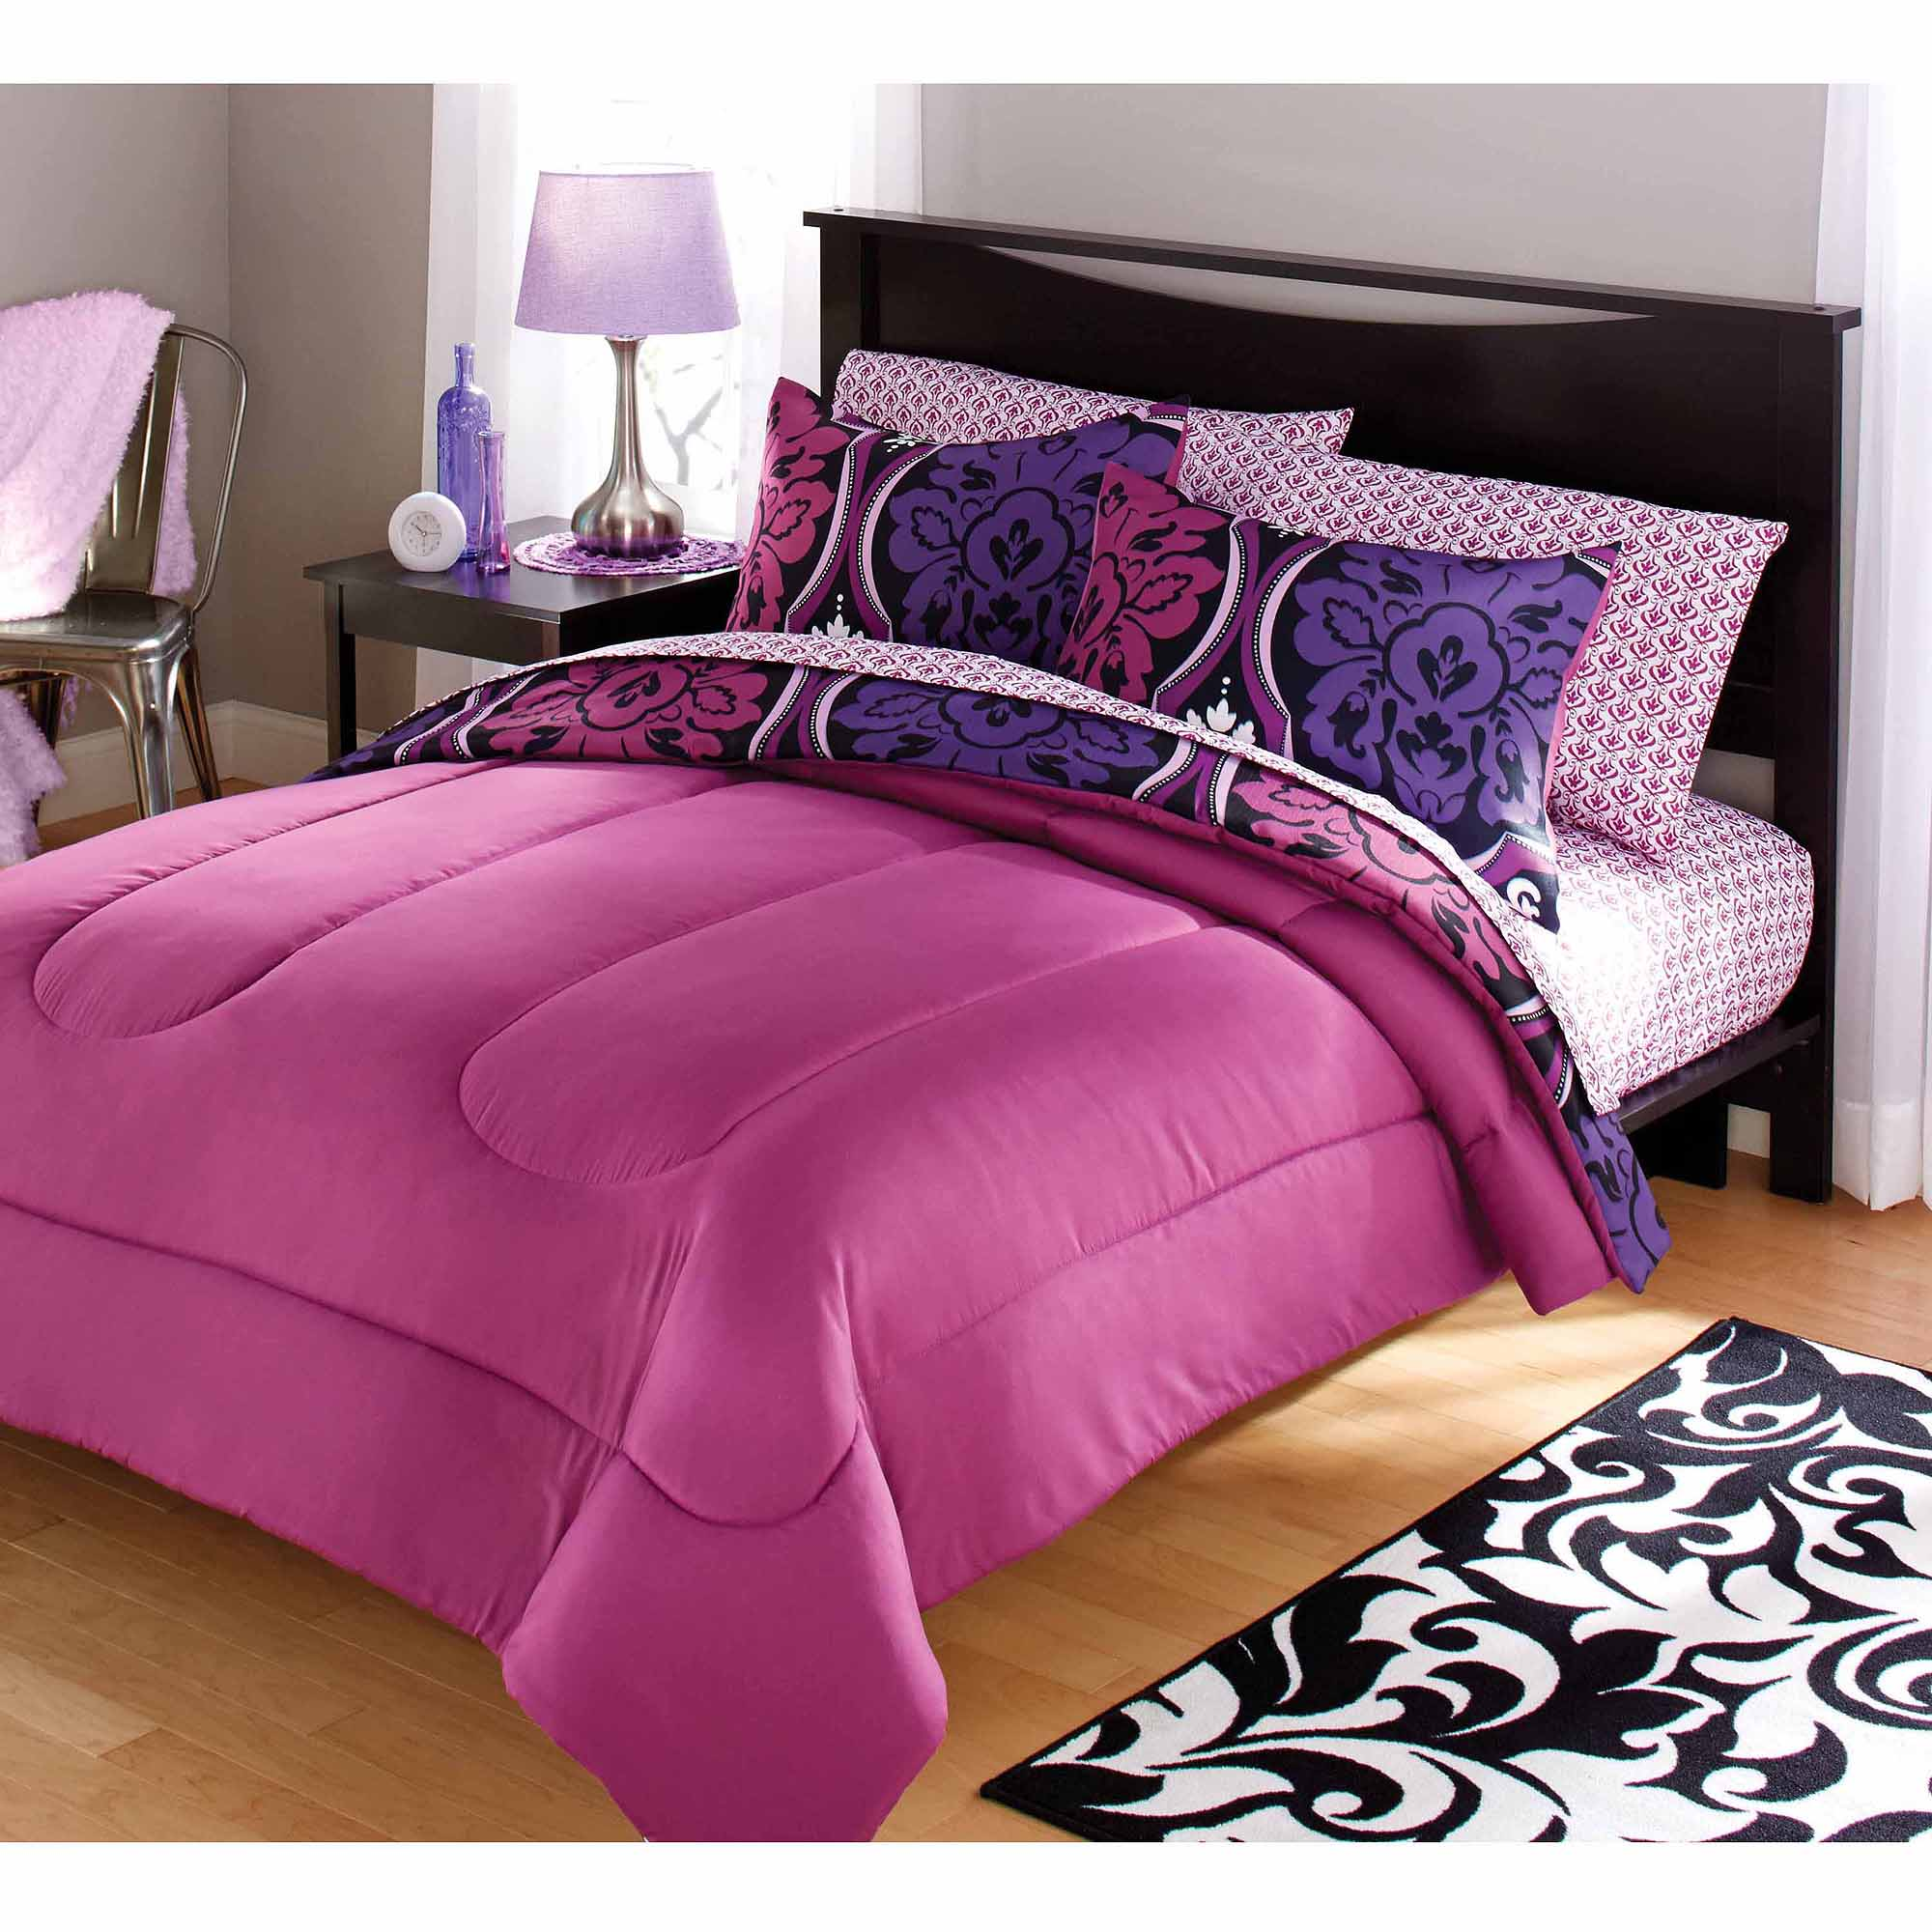 duvet single cover set bedding itm shoes bed cotton polyester purple in